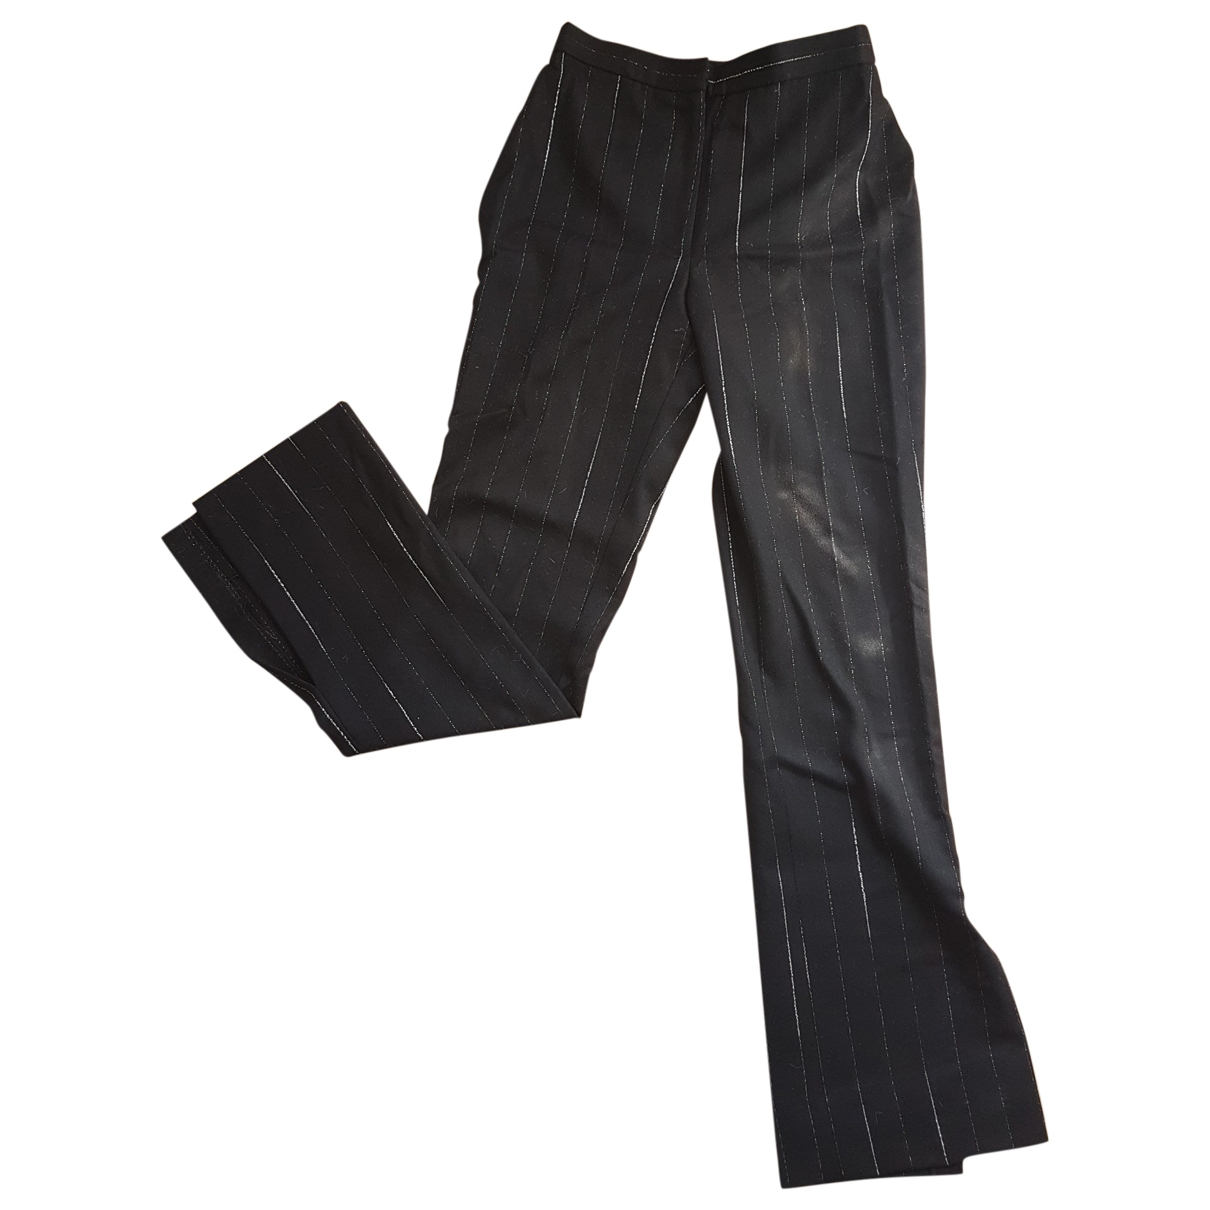 Moschino Cheap And Chic N Black Wool Trousers for Women 36 FR